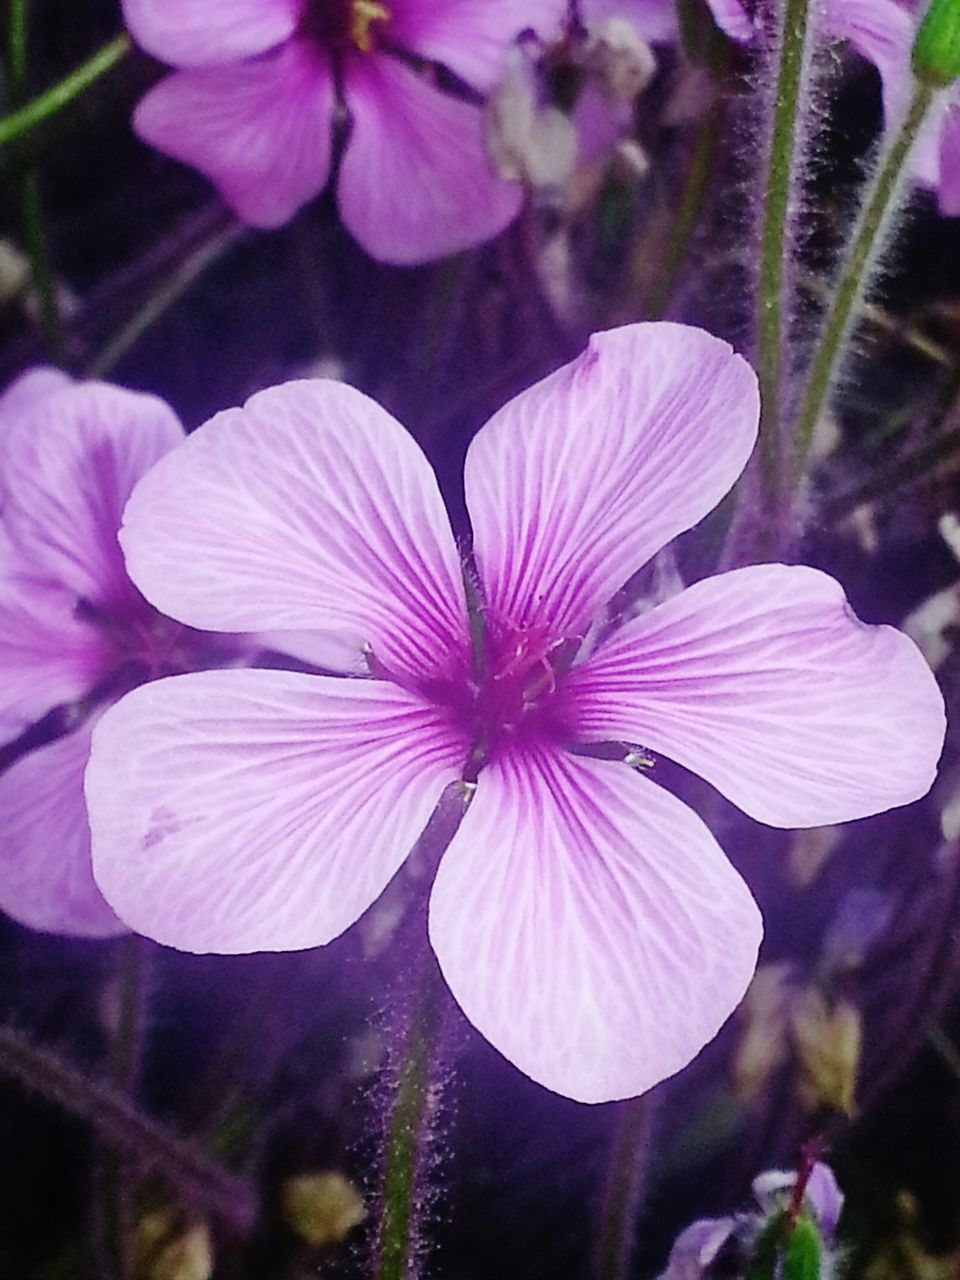 flower, petal, fragility, freshness, growth, flower head, nature, beauty in nature, plant, focus on foreground, purple, outdoors, blooming, no people, day, close-up, pink color, petunia